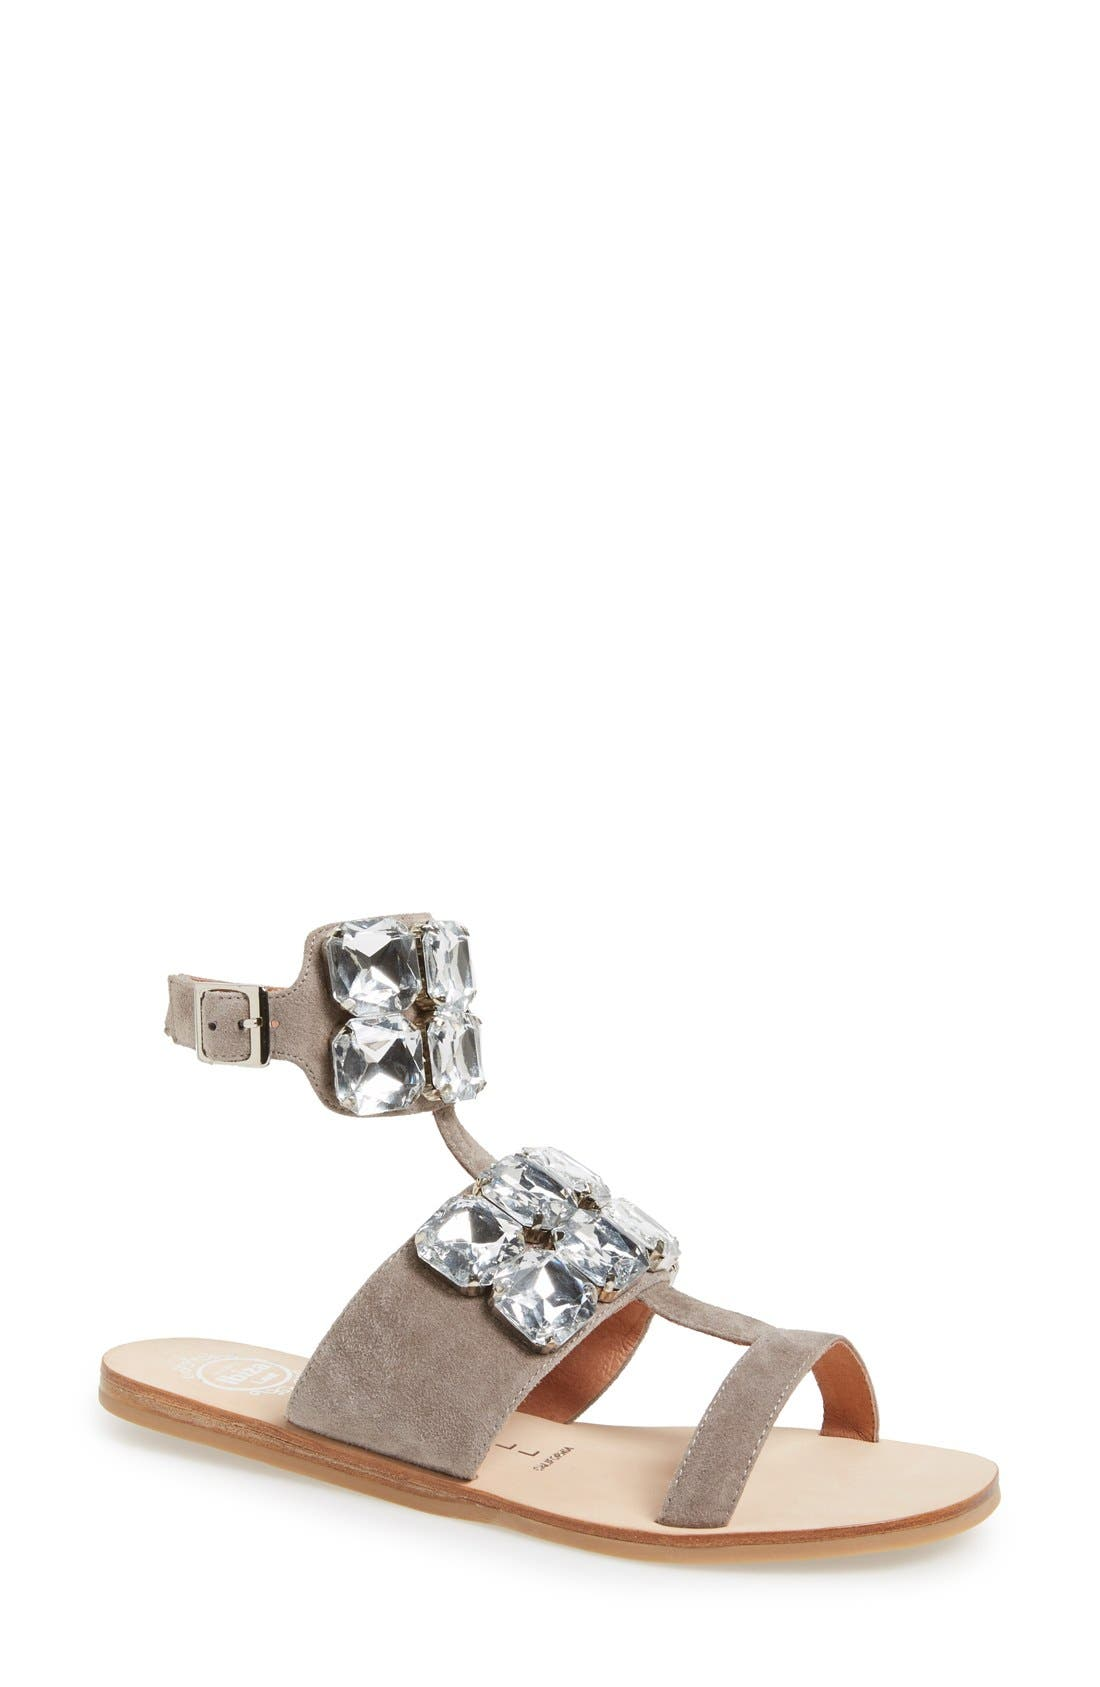 JEFFREY CAMPBELL, 'Sabita' Jeweled Suede Ankle Strap Sandal, Alternate thumbnail 2, color, 060